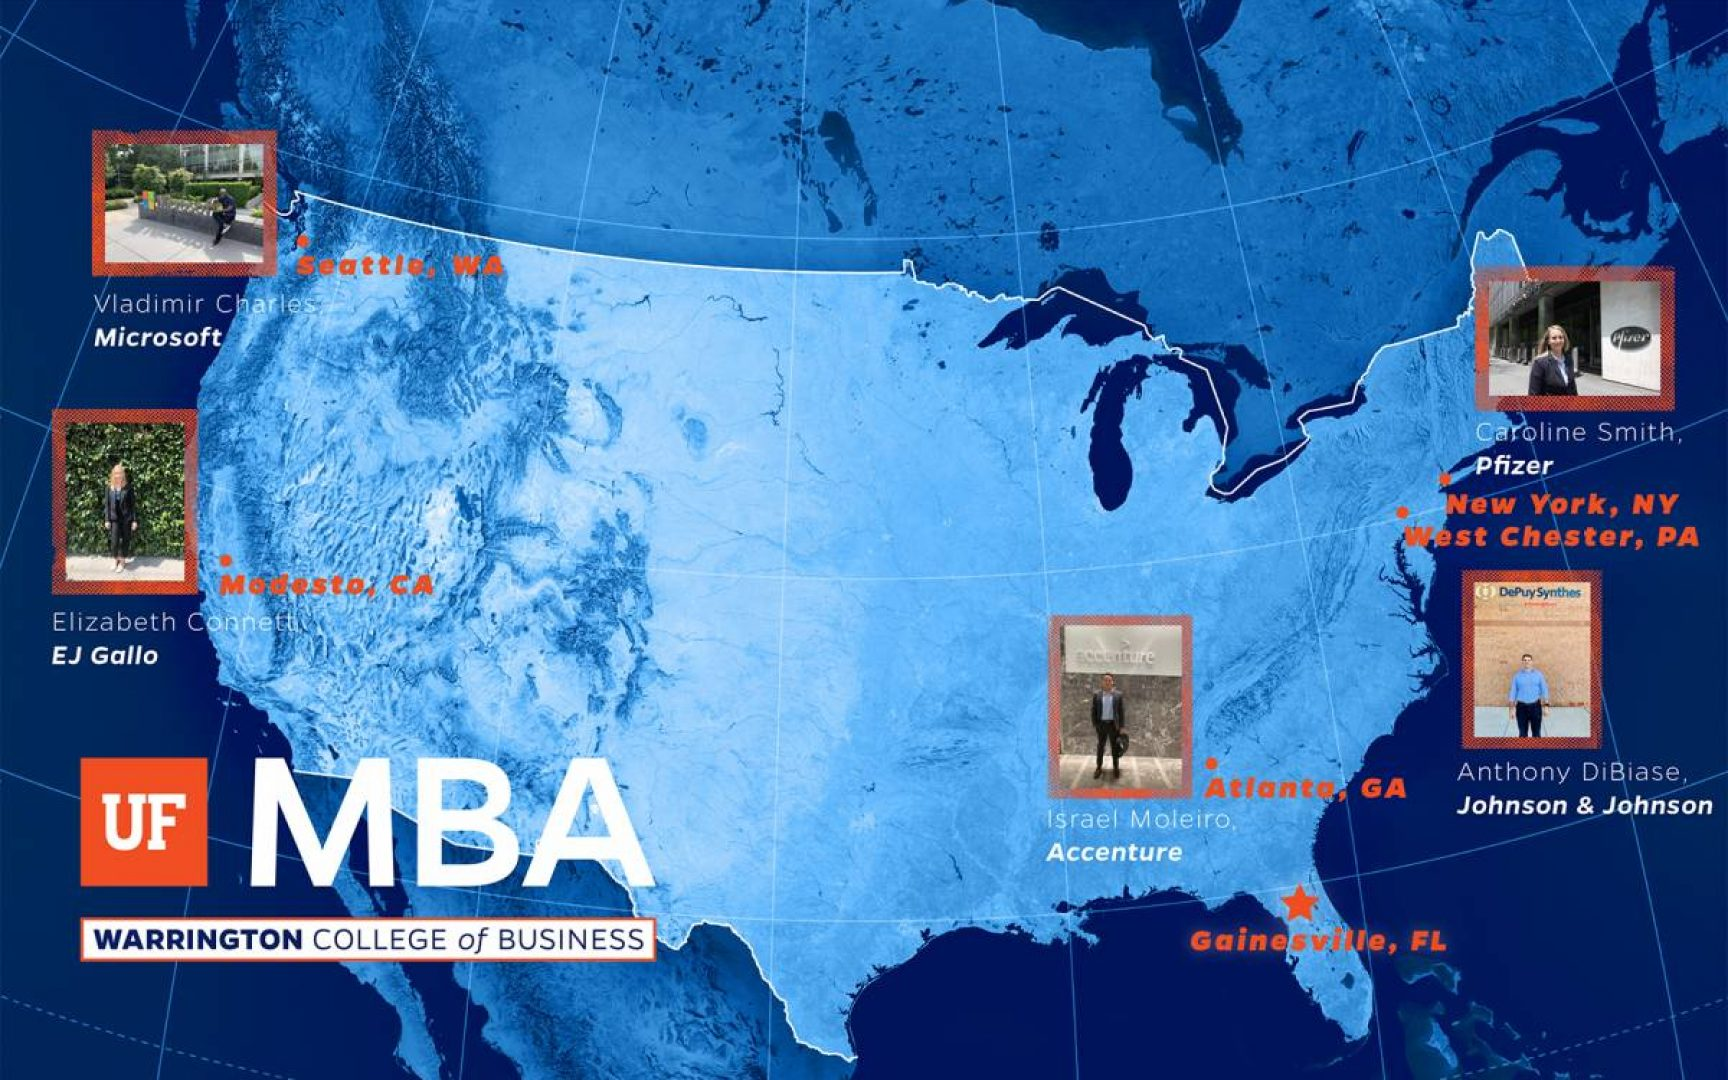 Map of the US with spots marking where UF MBA students are doing internships